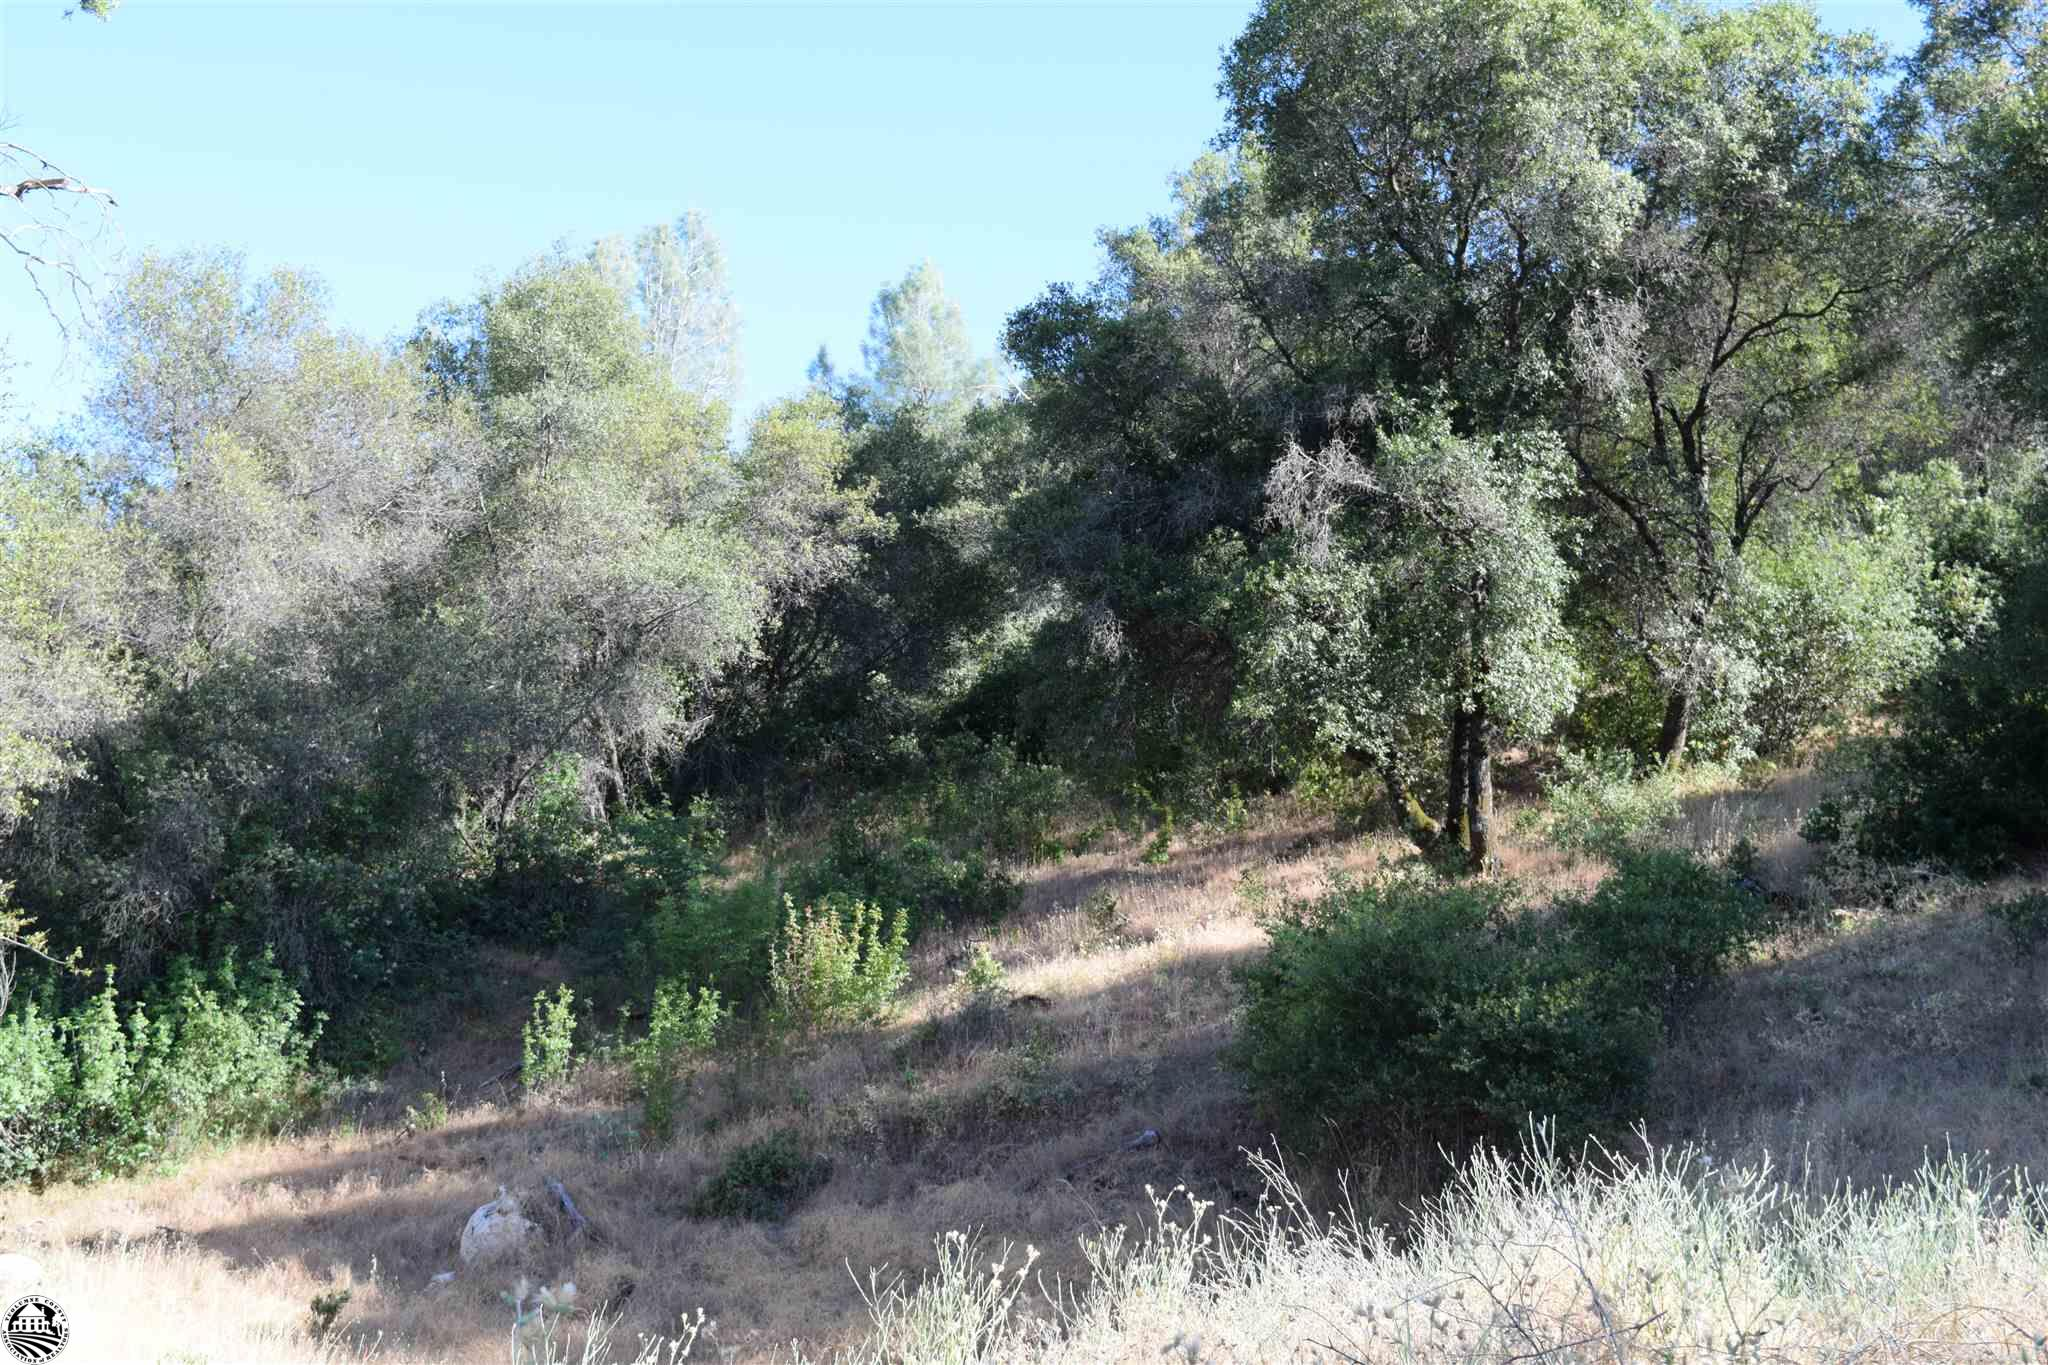 000 Highway 49 4 Parcels, Sonora, CA 95370